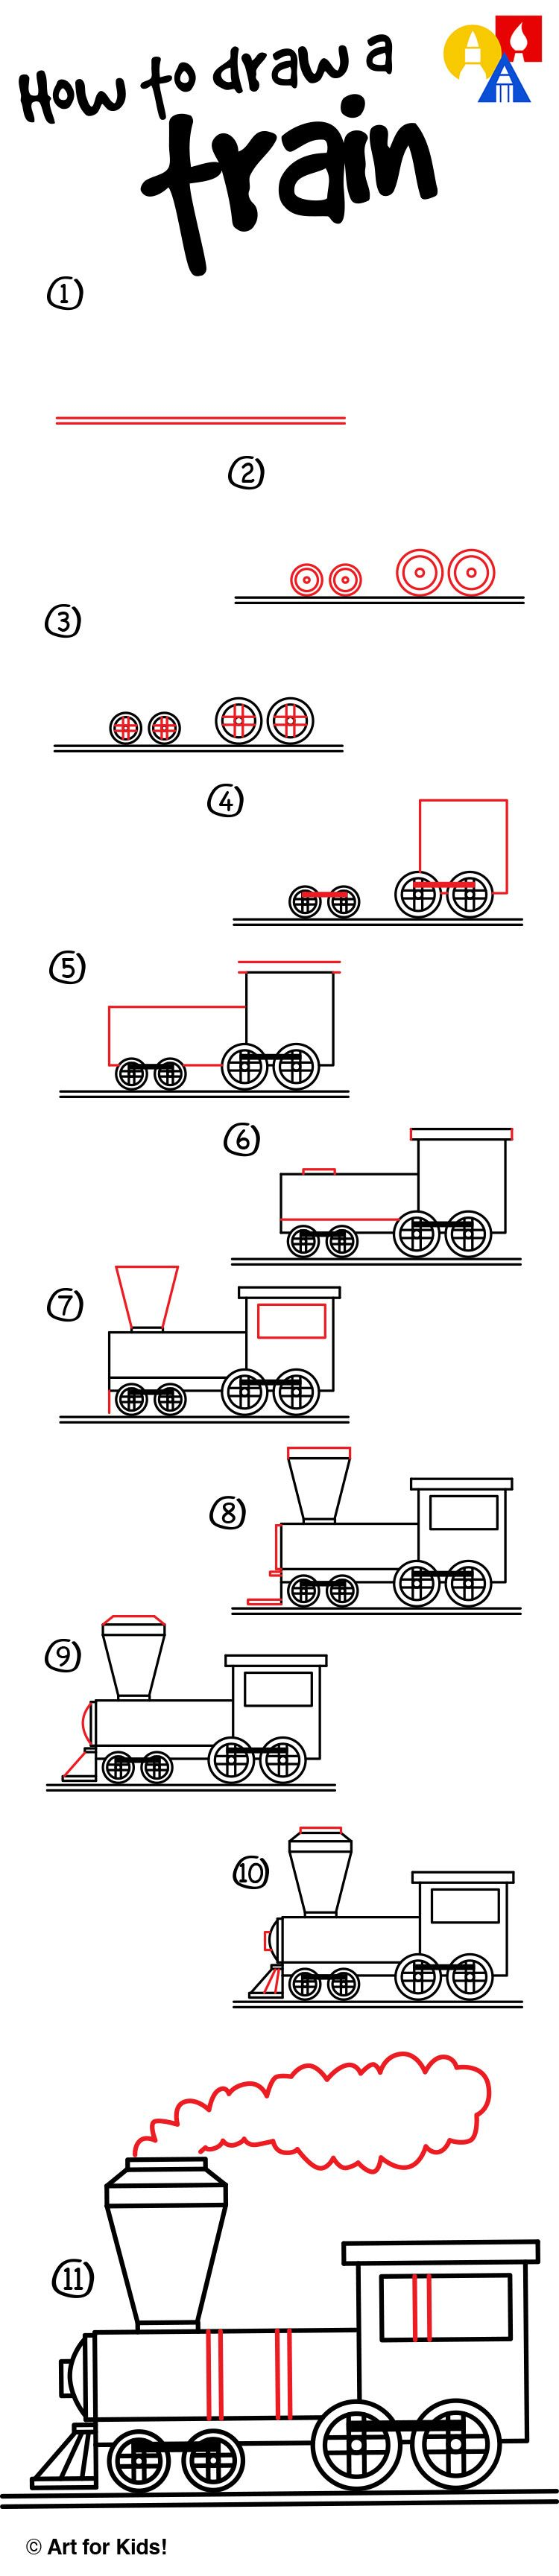 How To Draw A Train Art For Kids Hub Pre School Artists